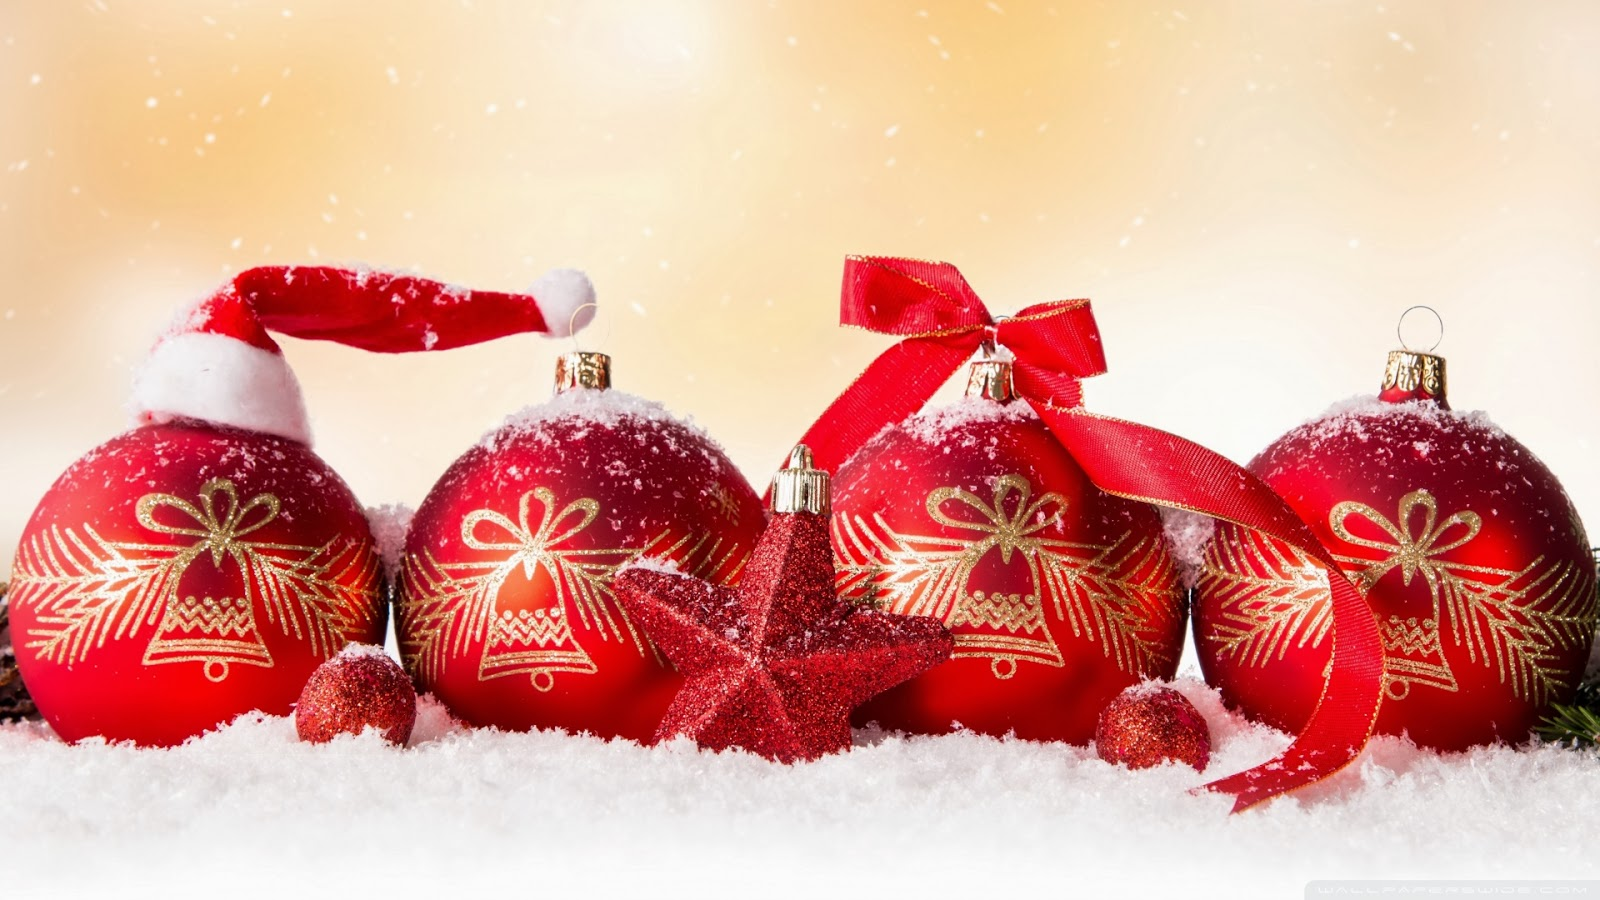 cgfrog  50 elegant hd wallpapers of christmas for mobile